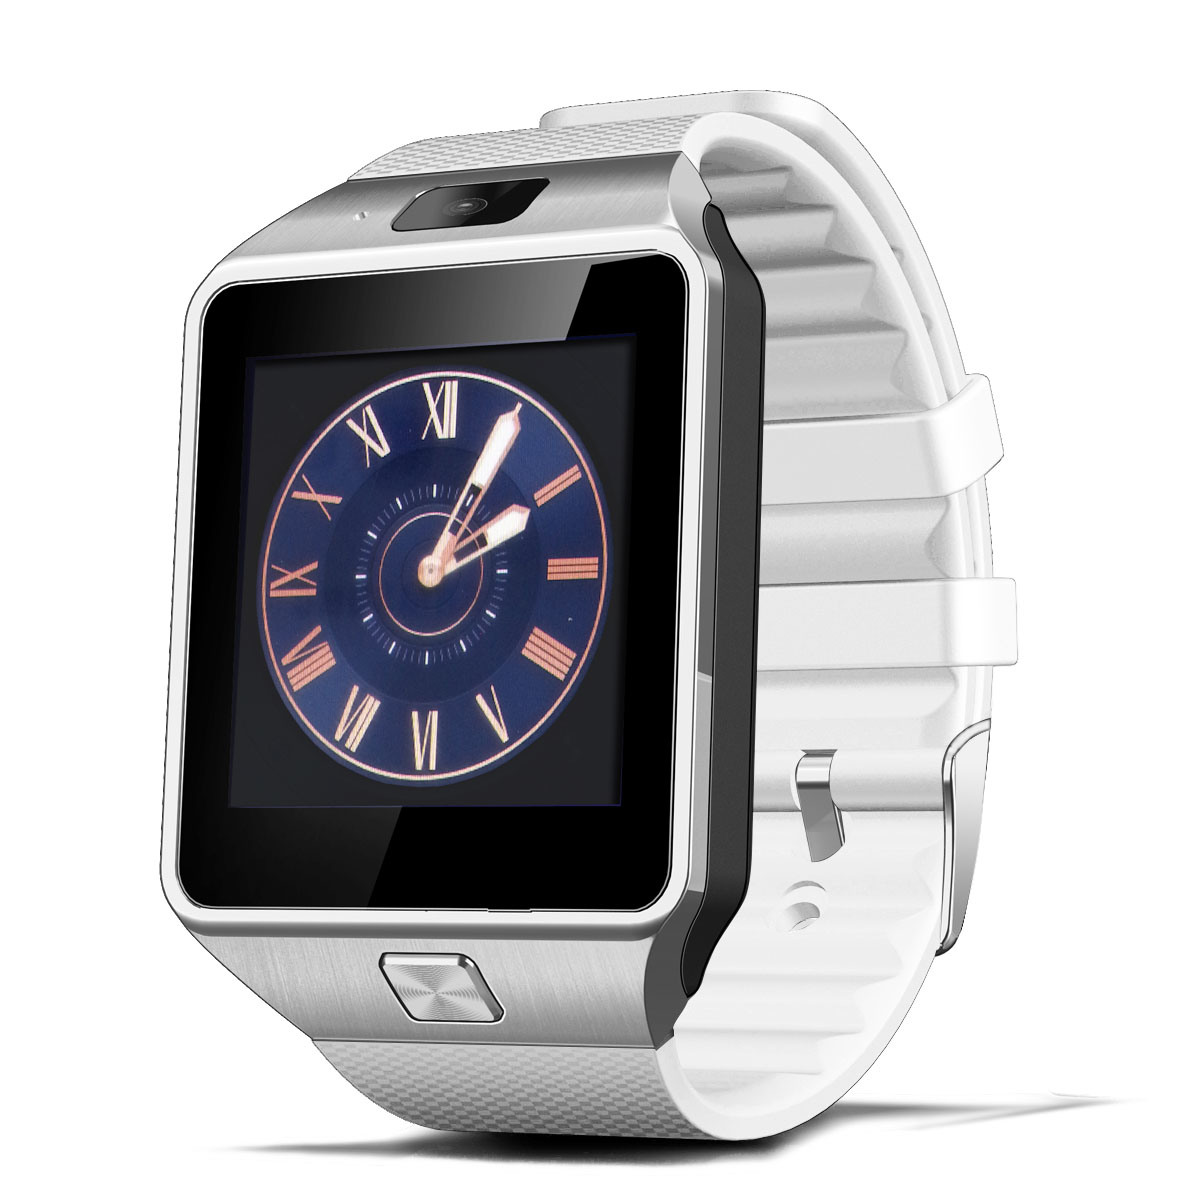 Hot Selling Smartwatch Dz09 with SIM Card Slot Camera Bluetooth